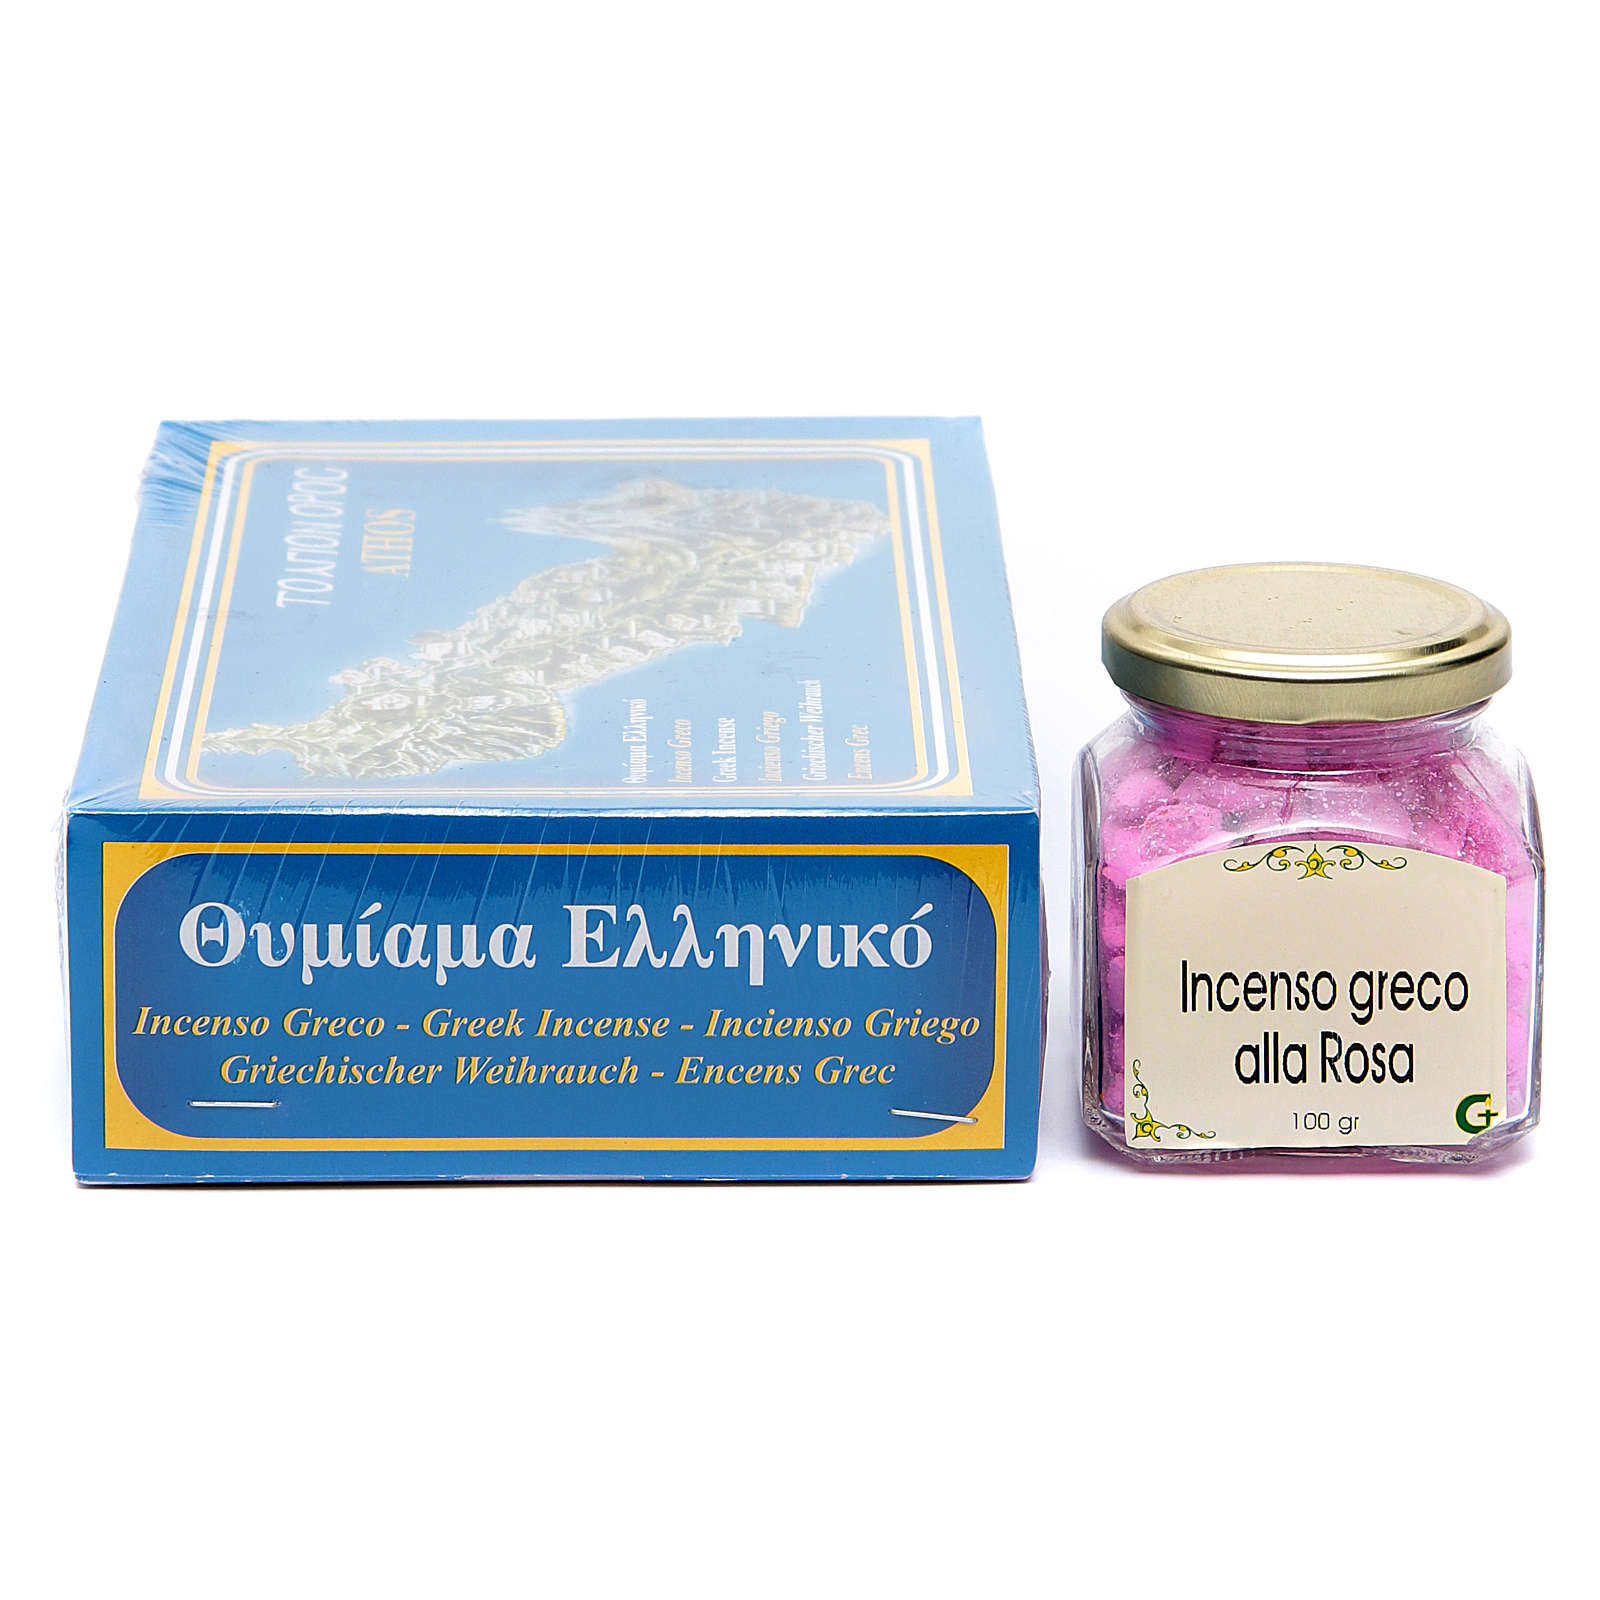 Rose scented Greek incense 3